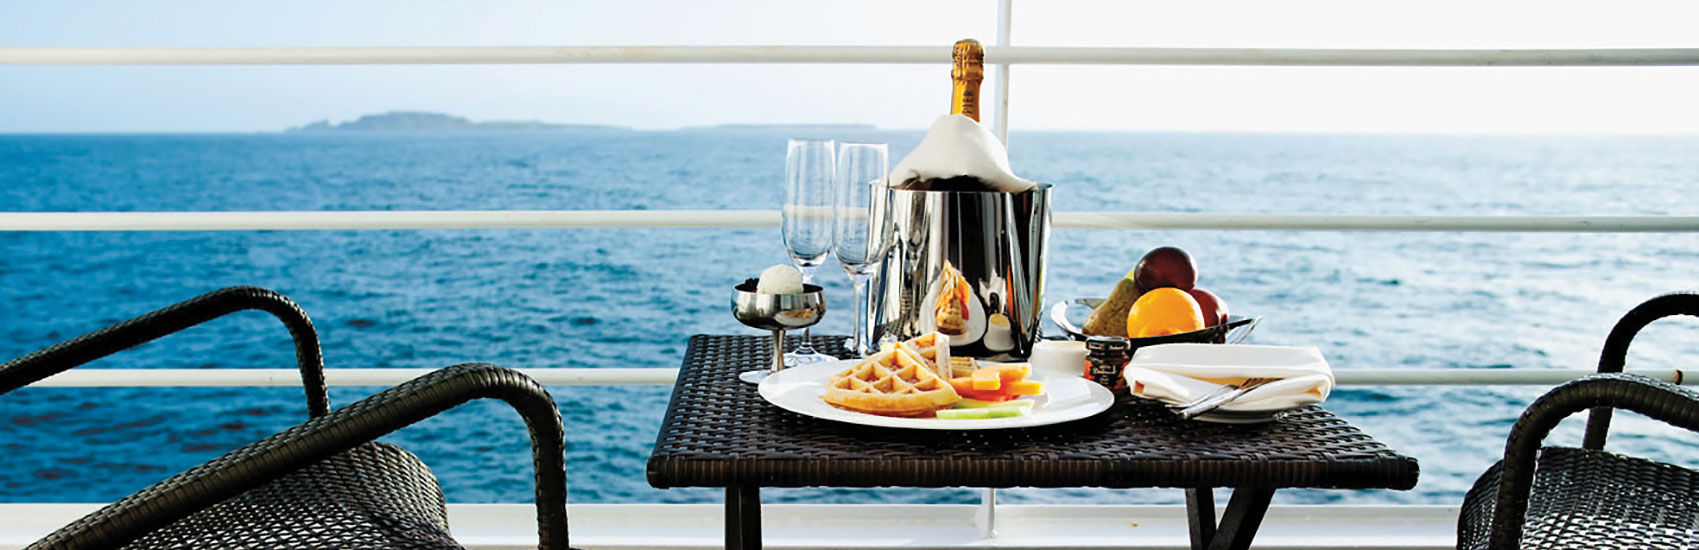 Discover The Best Value From Silversea Cruises 4